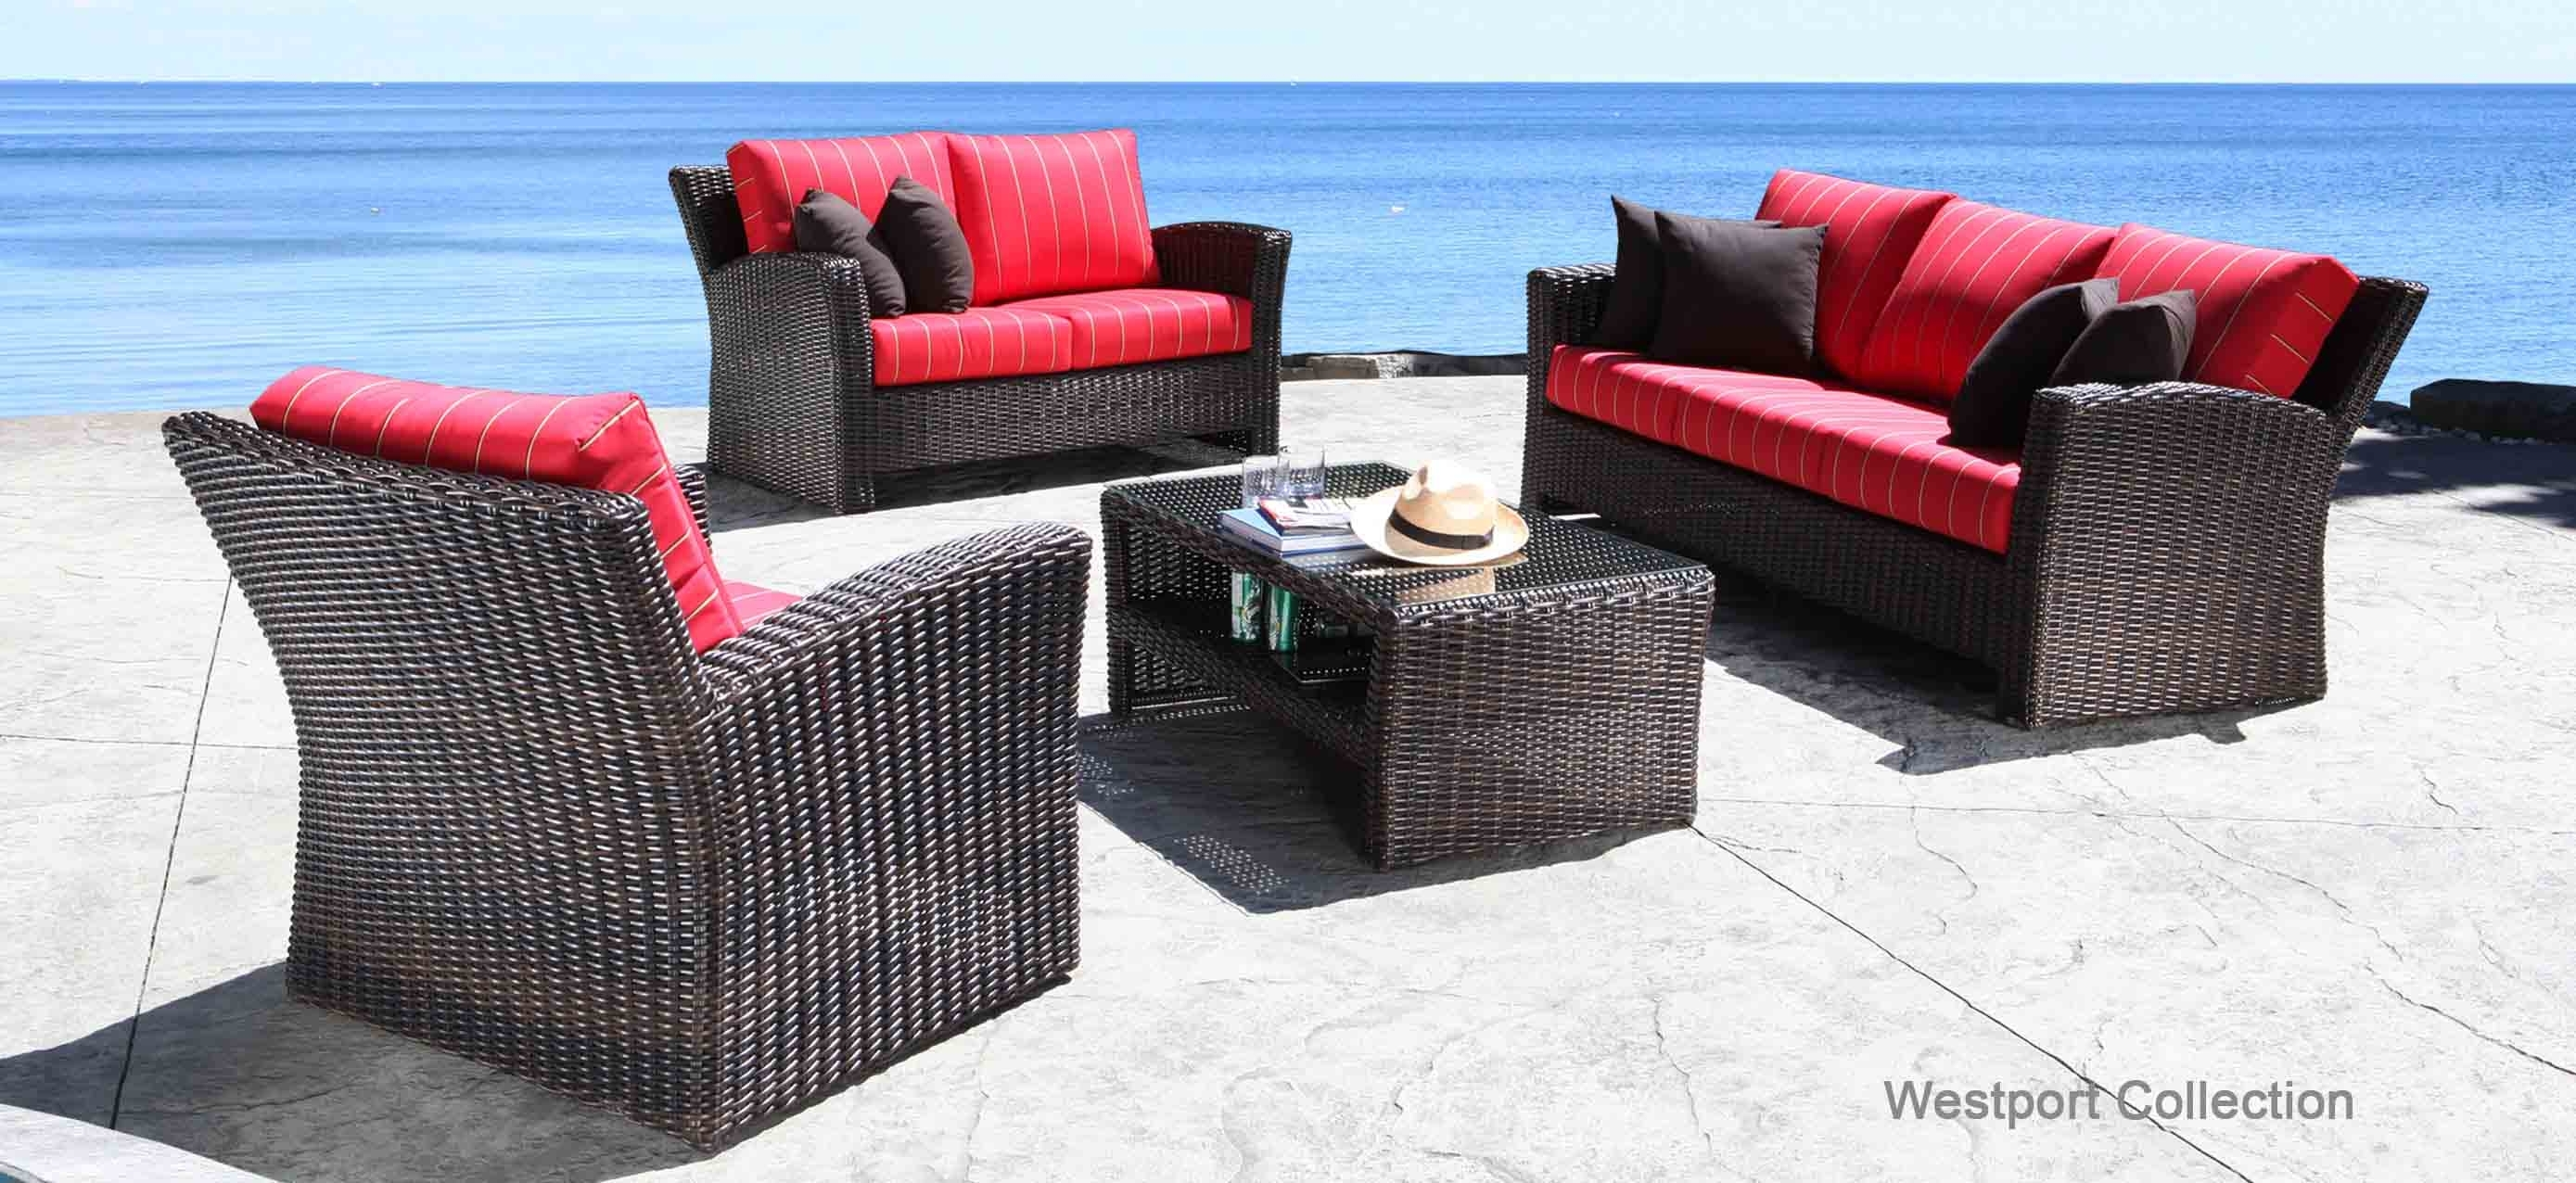 Shop Patio Furniture At Cabanacoast Inside Outdoor Lounge Furniture Modern Outdoor Lounge Furniture Modern Design